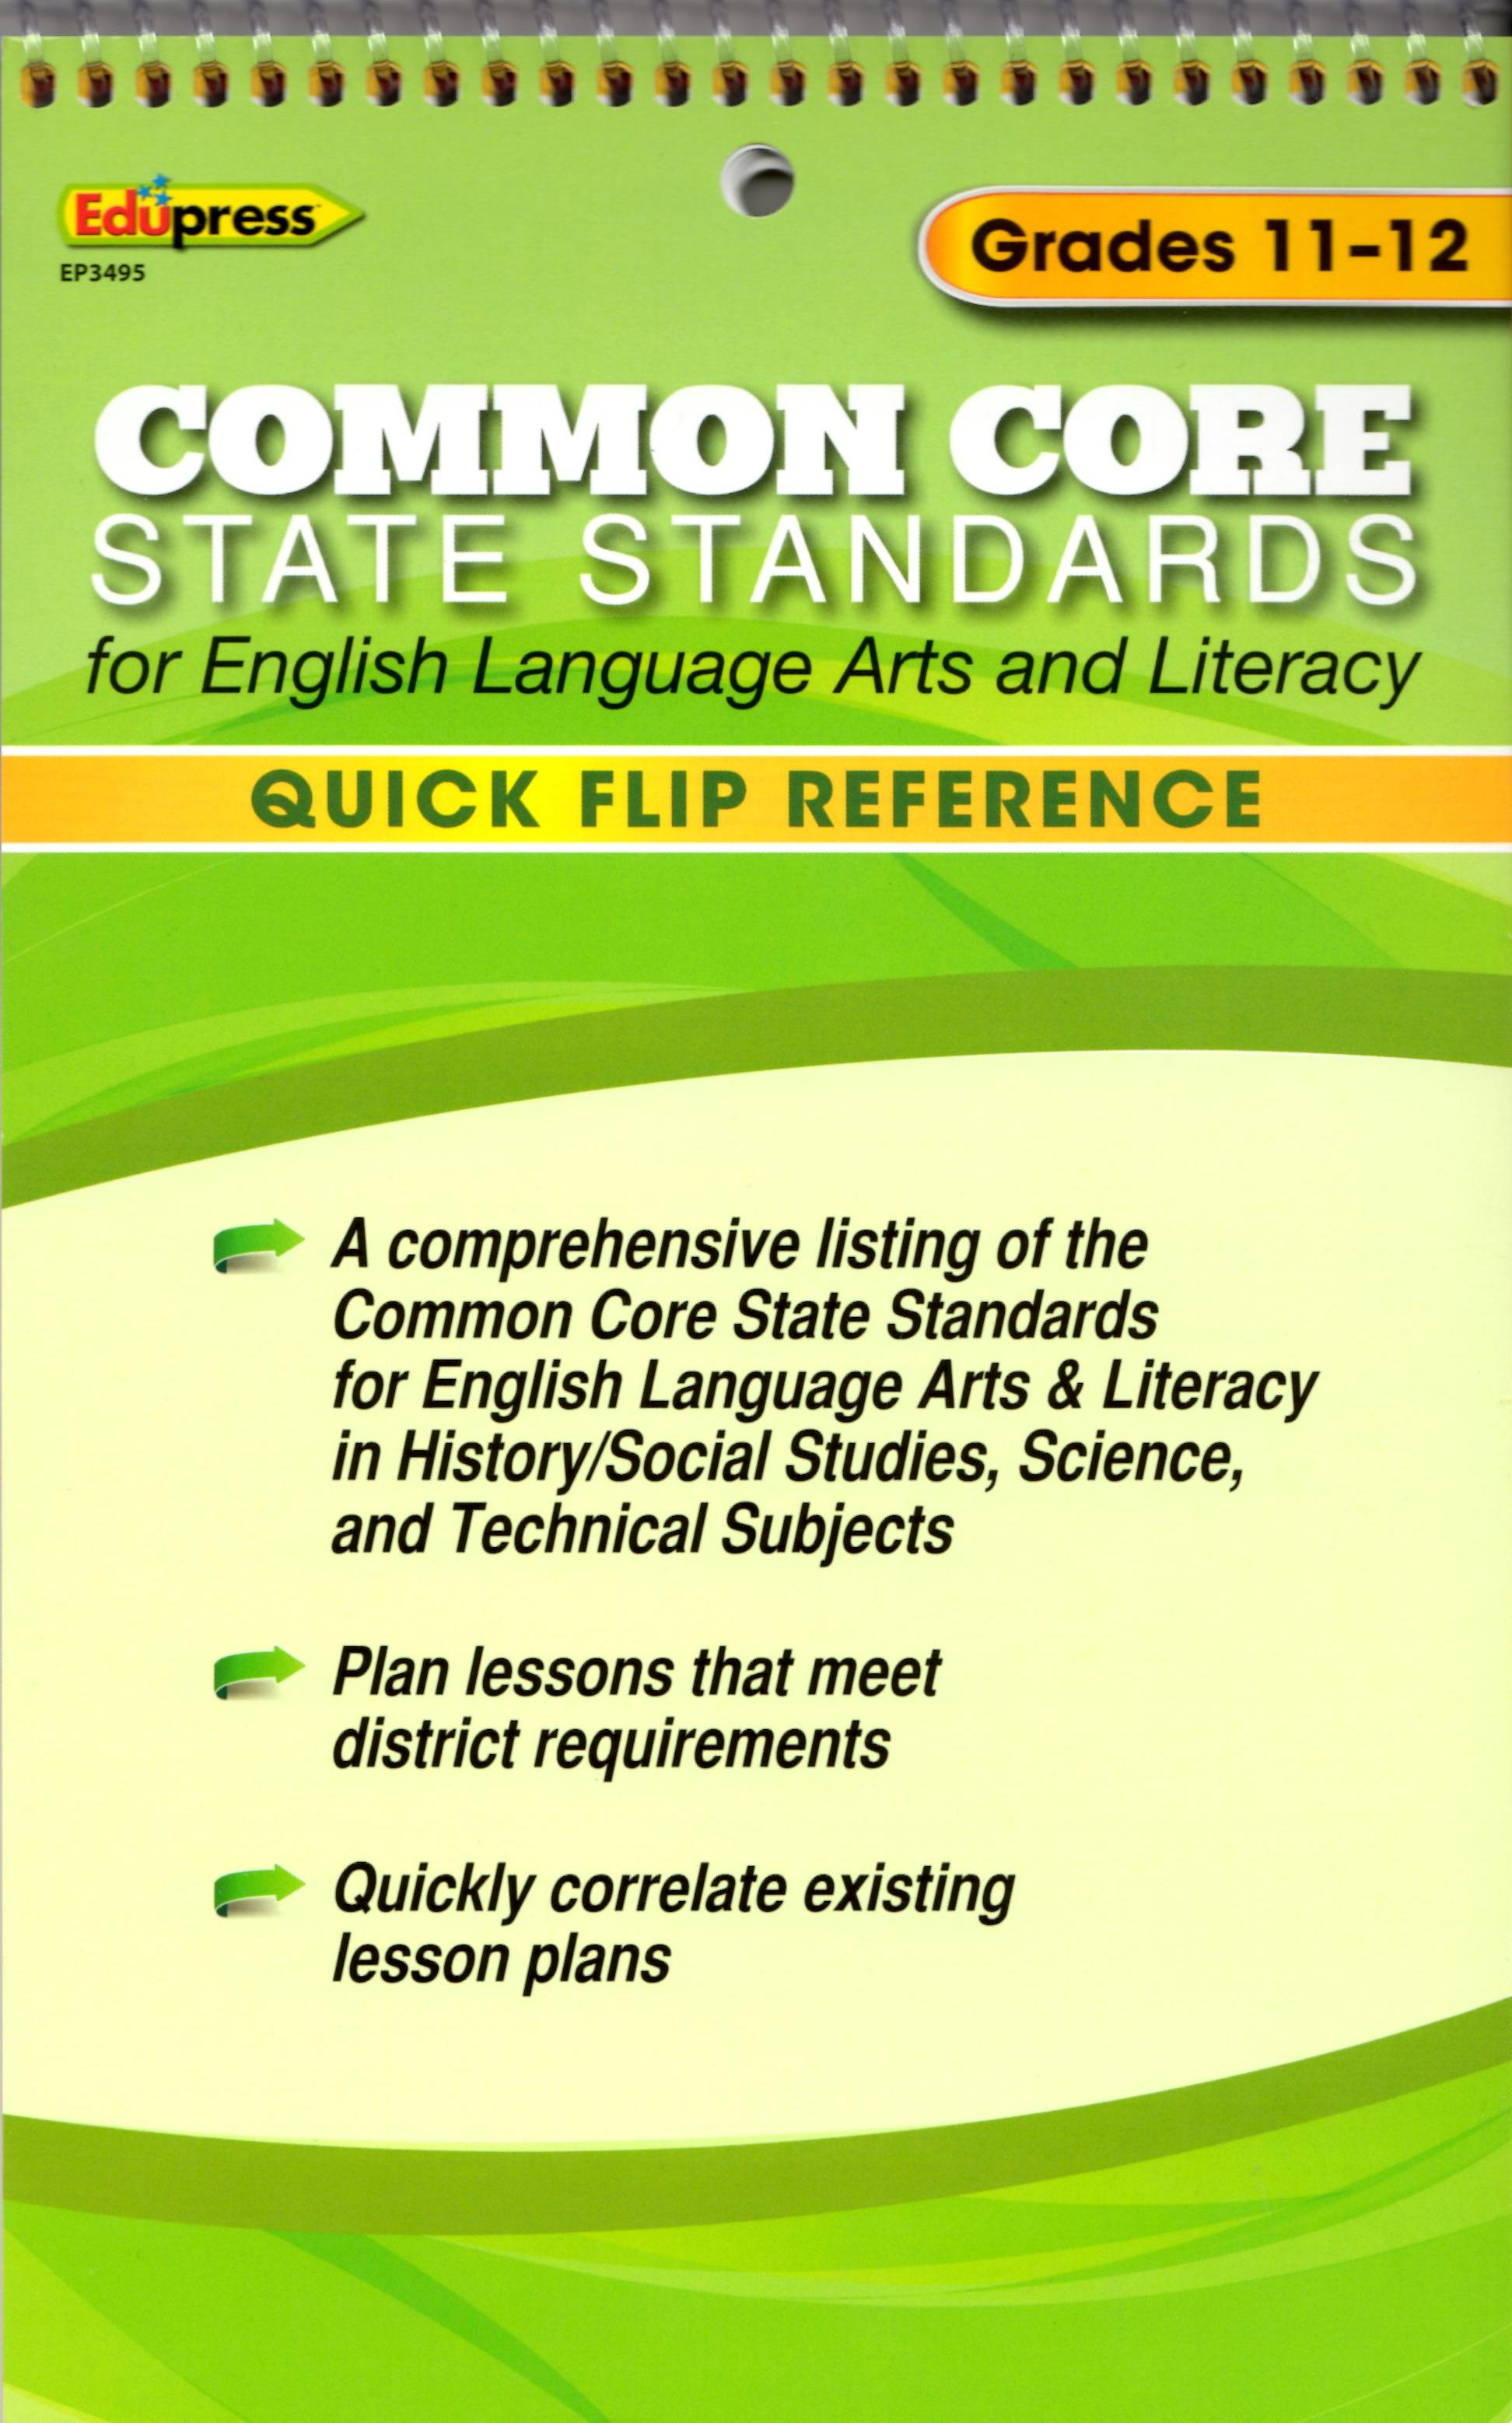 Common Core State Standards Grades 11-12 Flip Chart